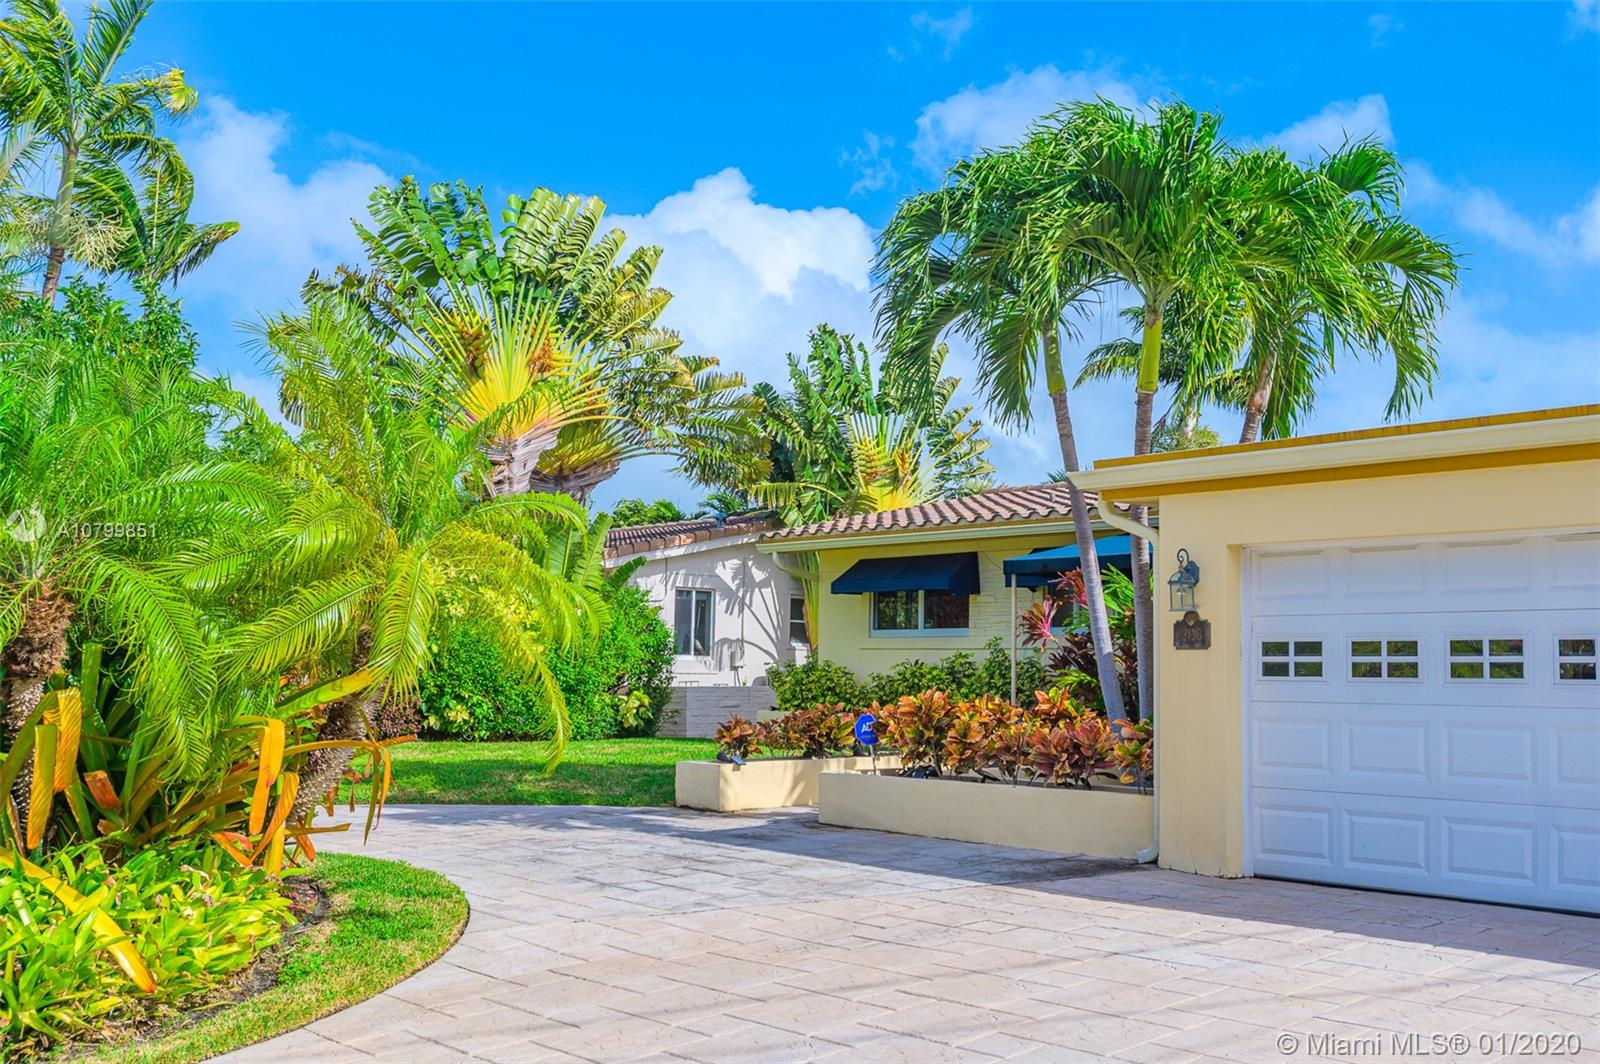 A Unique Waterfront Stunner in Wilton Manors. A vision of unobstructed water views from your Living Room and Master Bedroom. Live the outdoor lifestyle while enjoying the Glorious LED lit Pool, 70ft of Waterfront with Dock and Ocean Access. Impact Windows and Doors with Newer Roof, AC and Tankless Water Heater. This 3 bedrooms, 2 bathrooms home with 2 car garage is a dream come true. Entertaining could not be set in a more exquisite private setting.  All the buzz of Wilton Manors close to your doorstep.